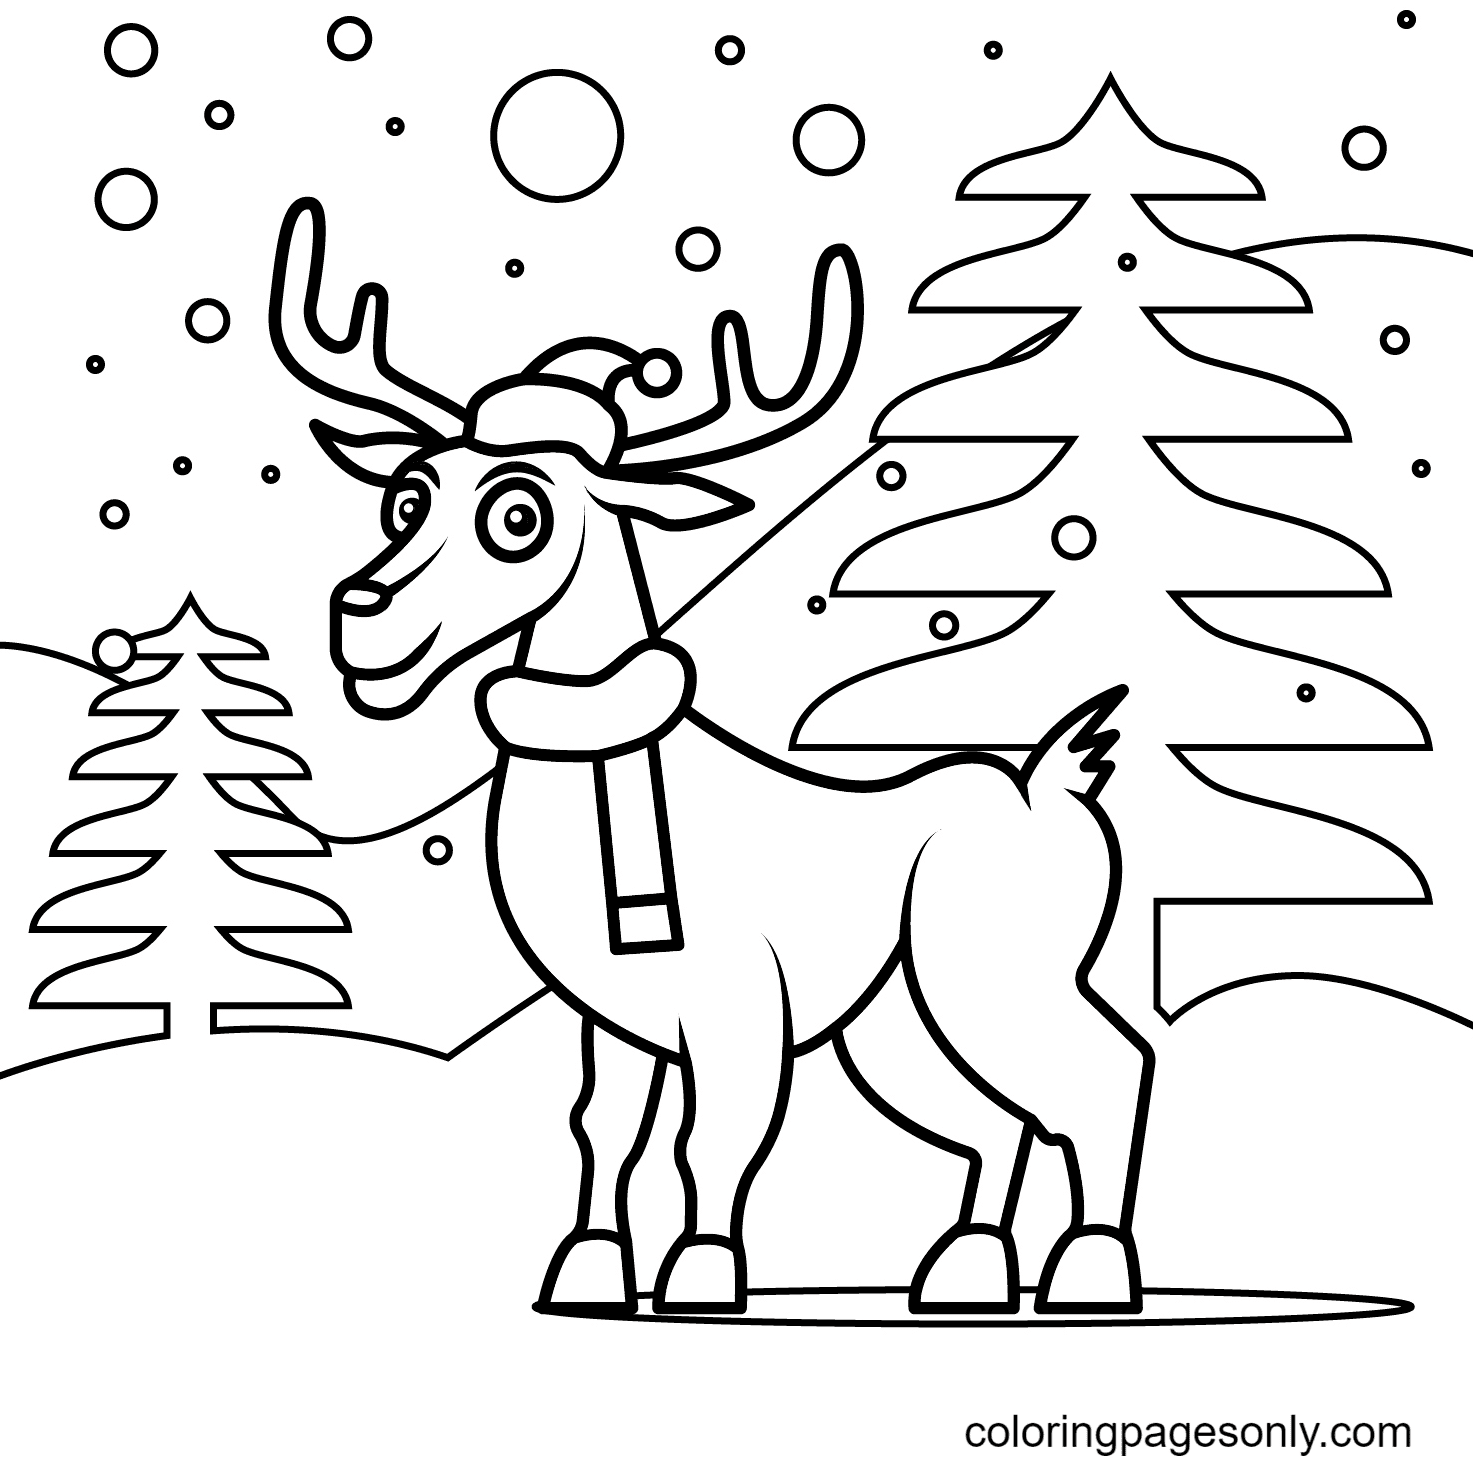 Christmas Reindeer Standing On the Snowy Mountain Coloring Page